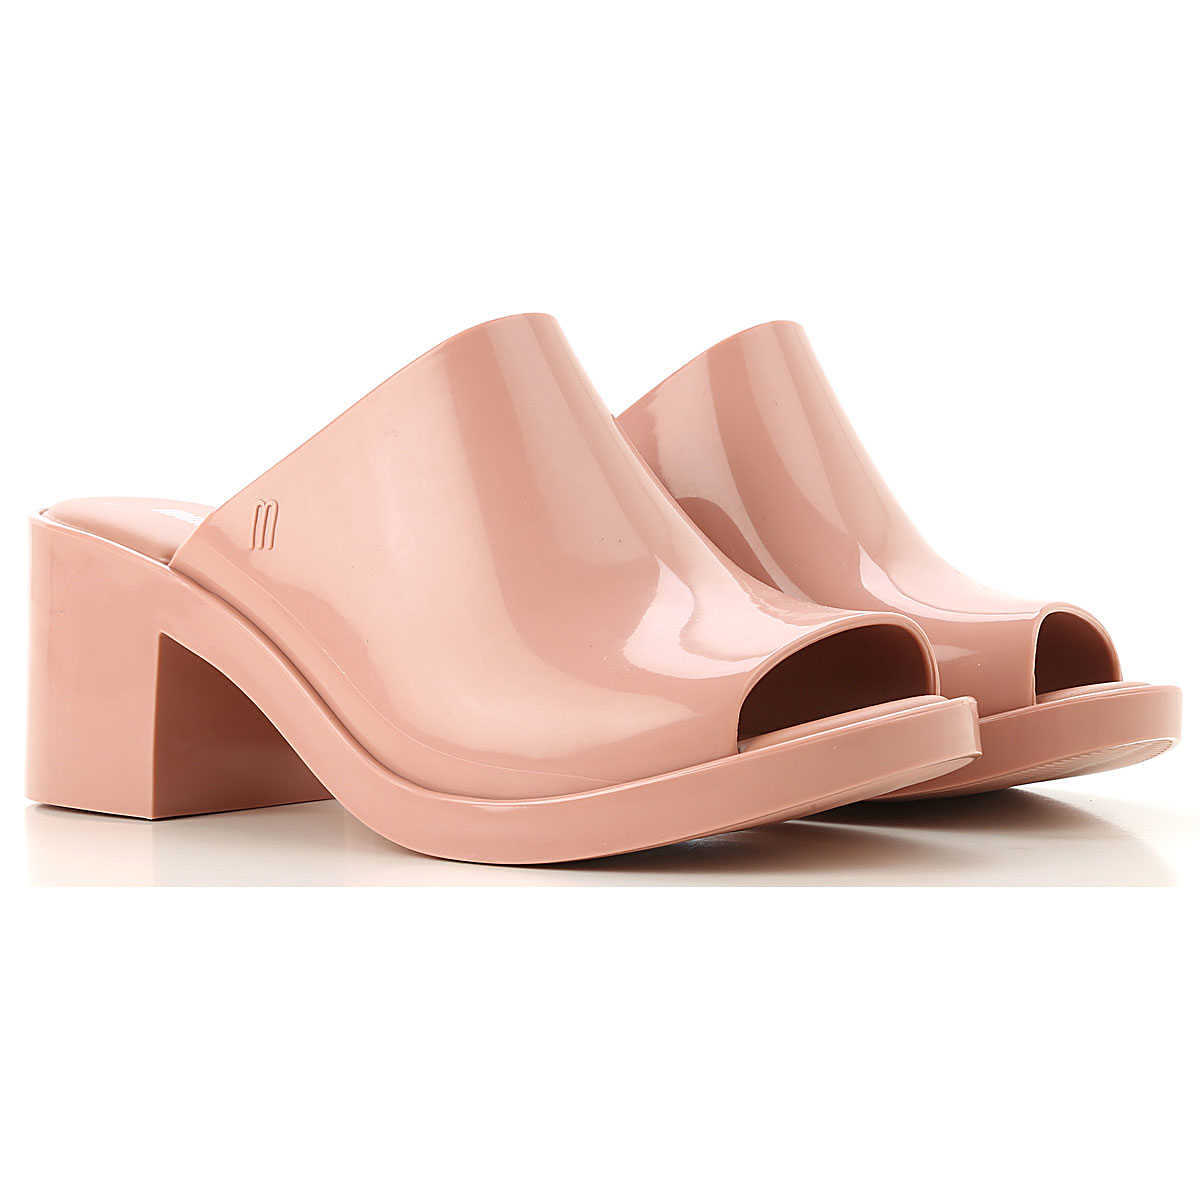 Melissa Wedges for Women On Sale Old Pink DK - GOOFASH - Womens HOUSE SHOES